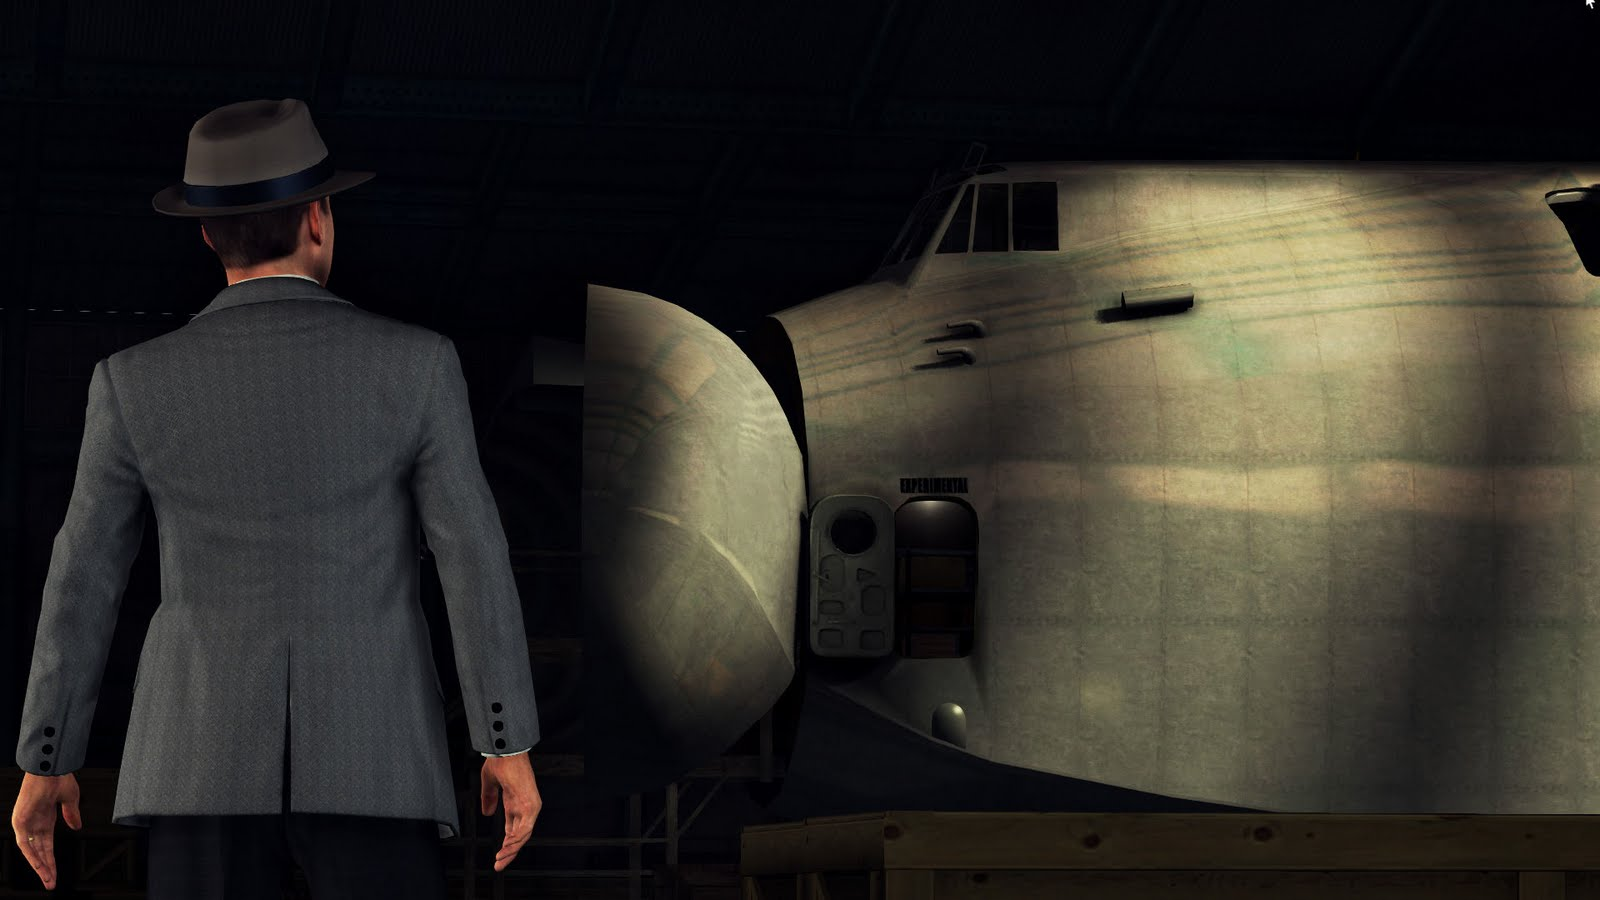 L.A.Noire.The.Complete.Edition.v1.0.2393.1.multi5.cracked.READ.NFO-THETA--11-221258.jpg